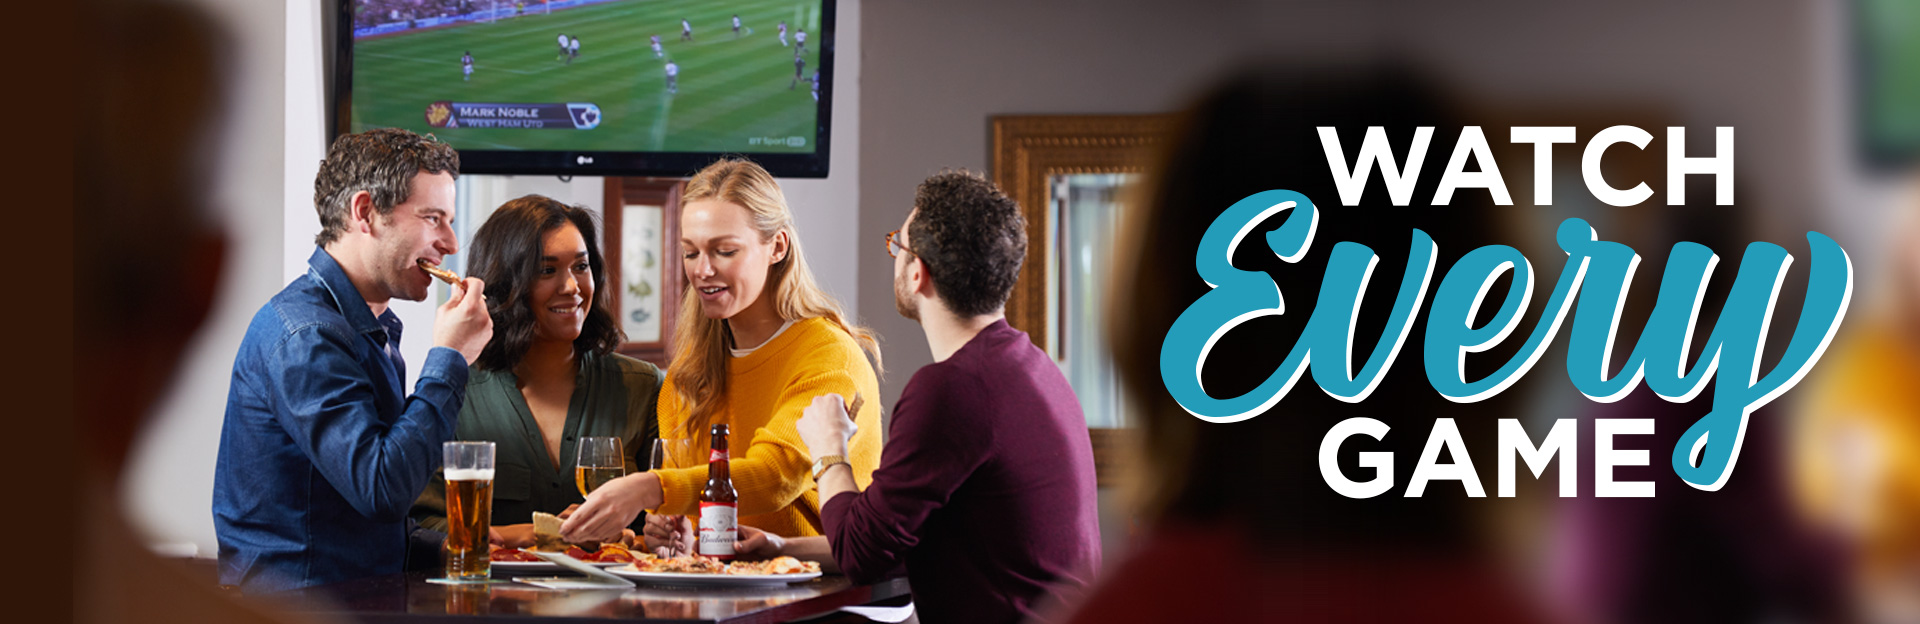 Watch Sport at The Royal George